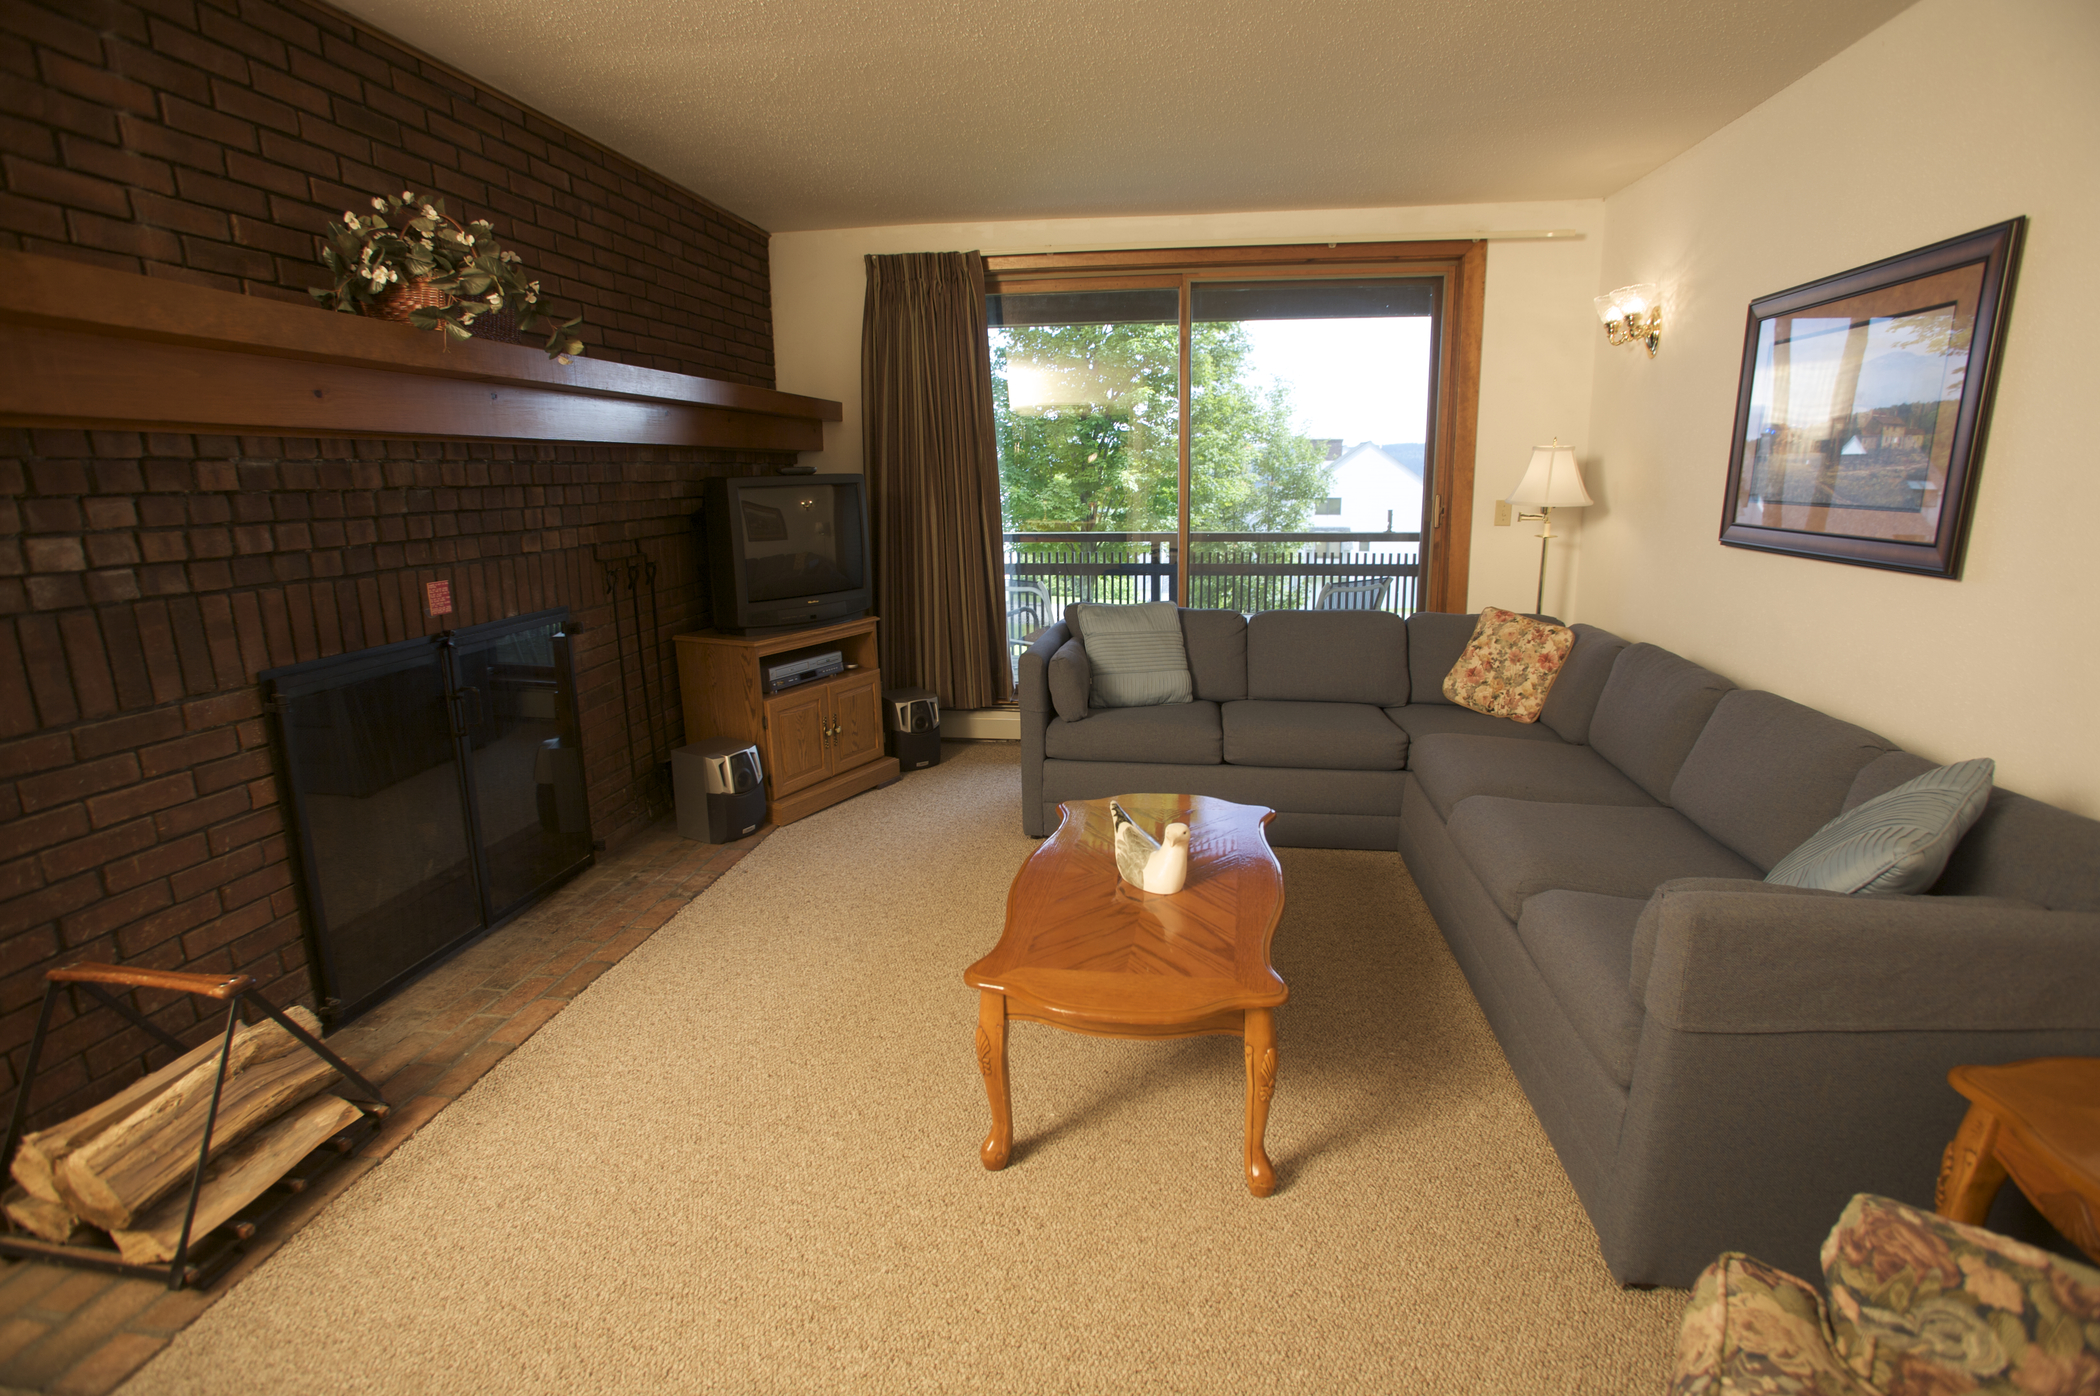 Sunrise Living Room (Sample - Varies by Unit)